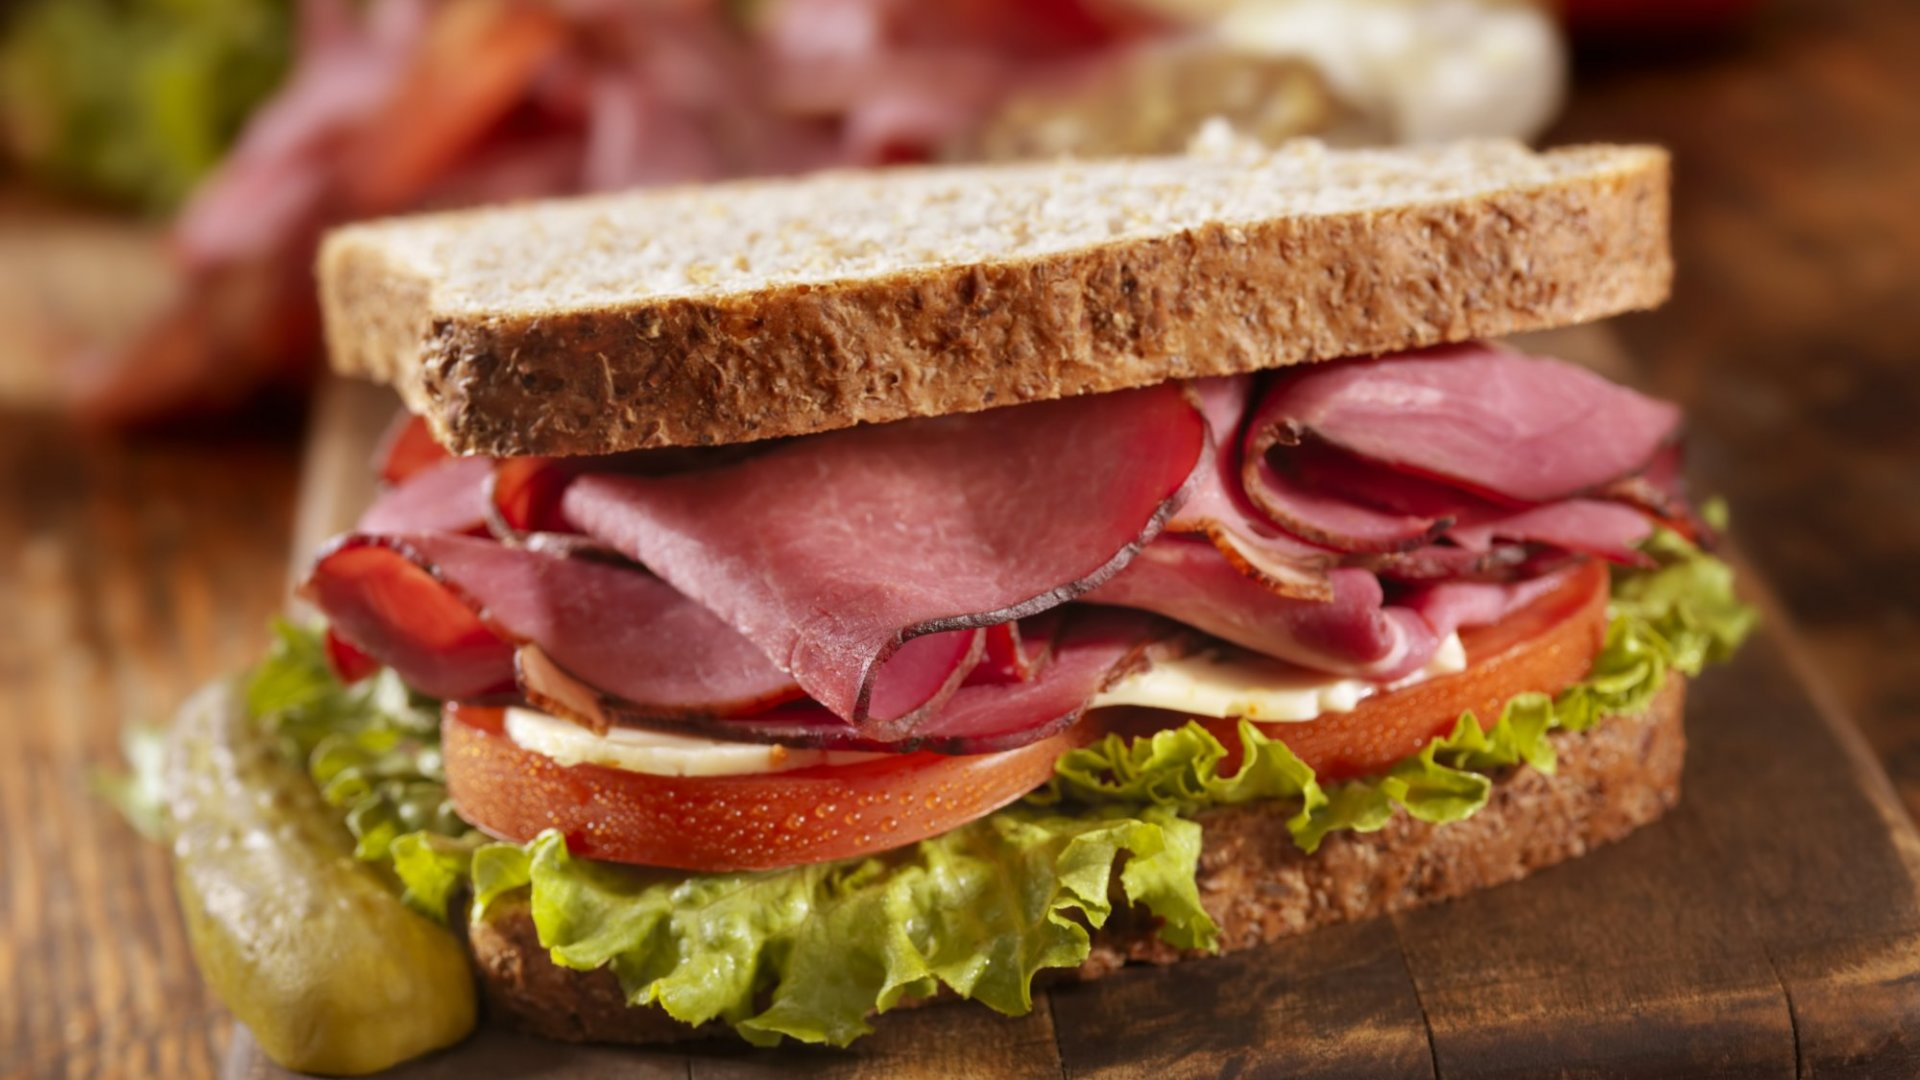 Looking for Business Inspiration? Get a Sandwich